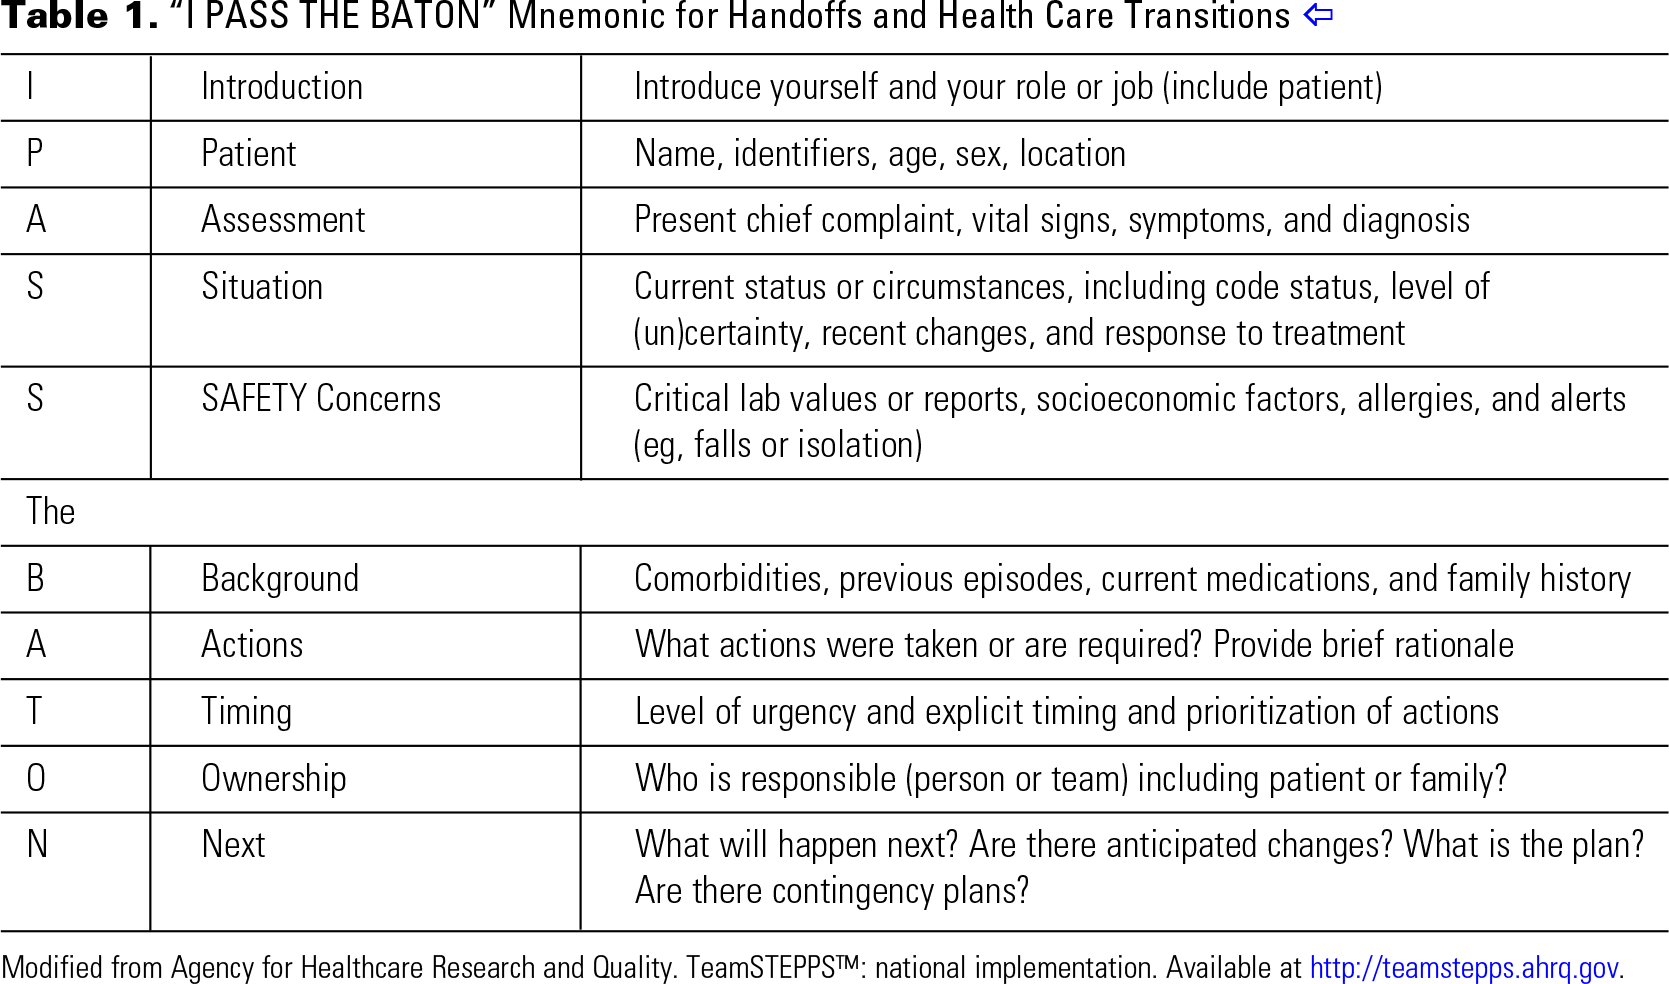 "Table 1. ""I PASS THE BATON"" Mnemonic for Handoffs and Health Care Transitions"